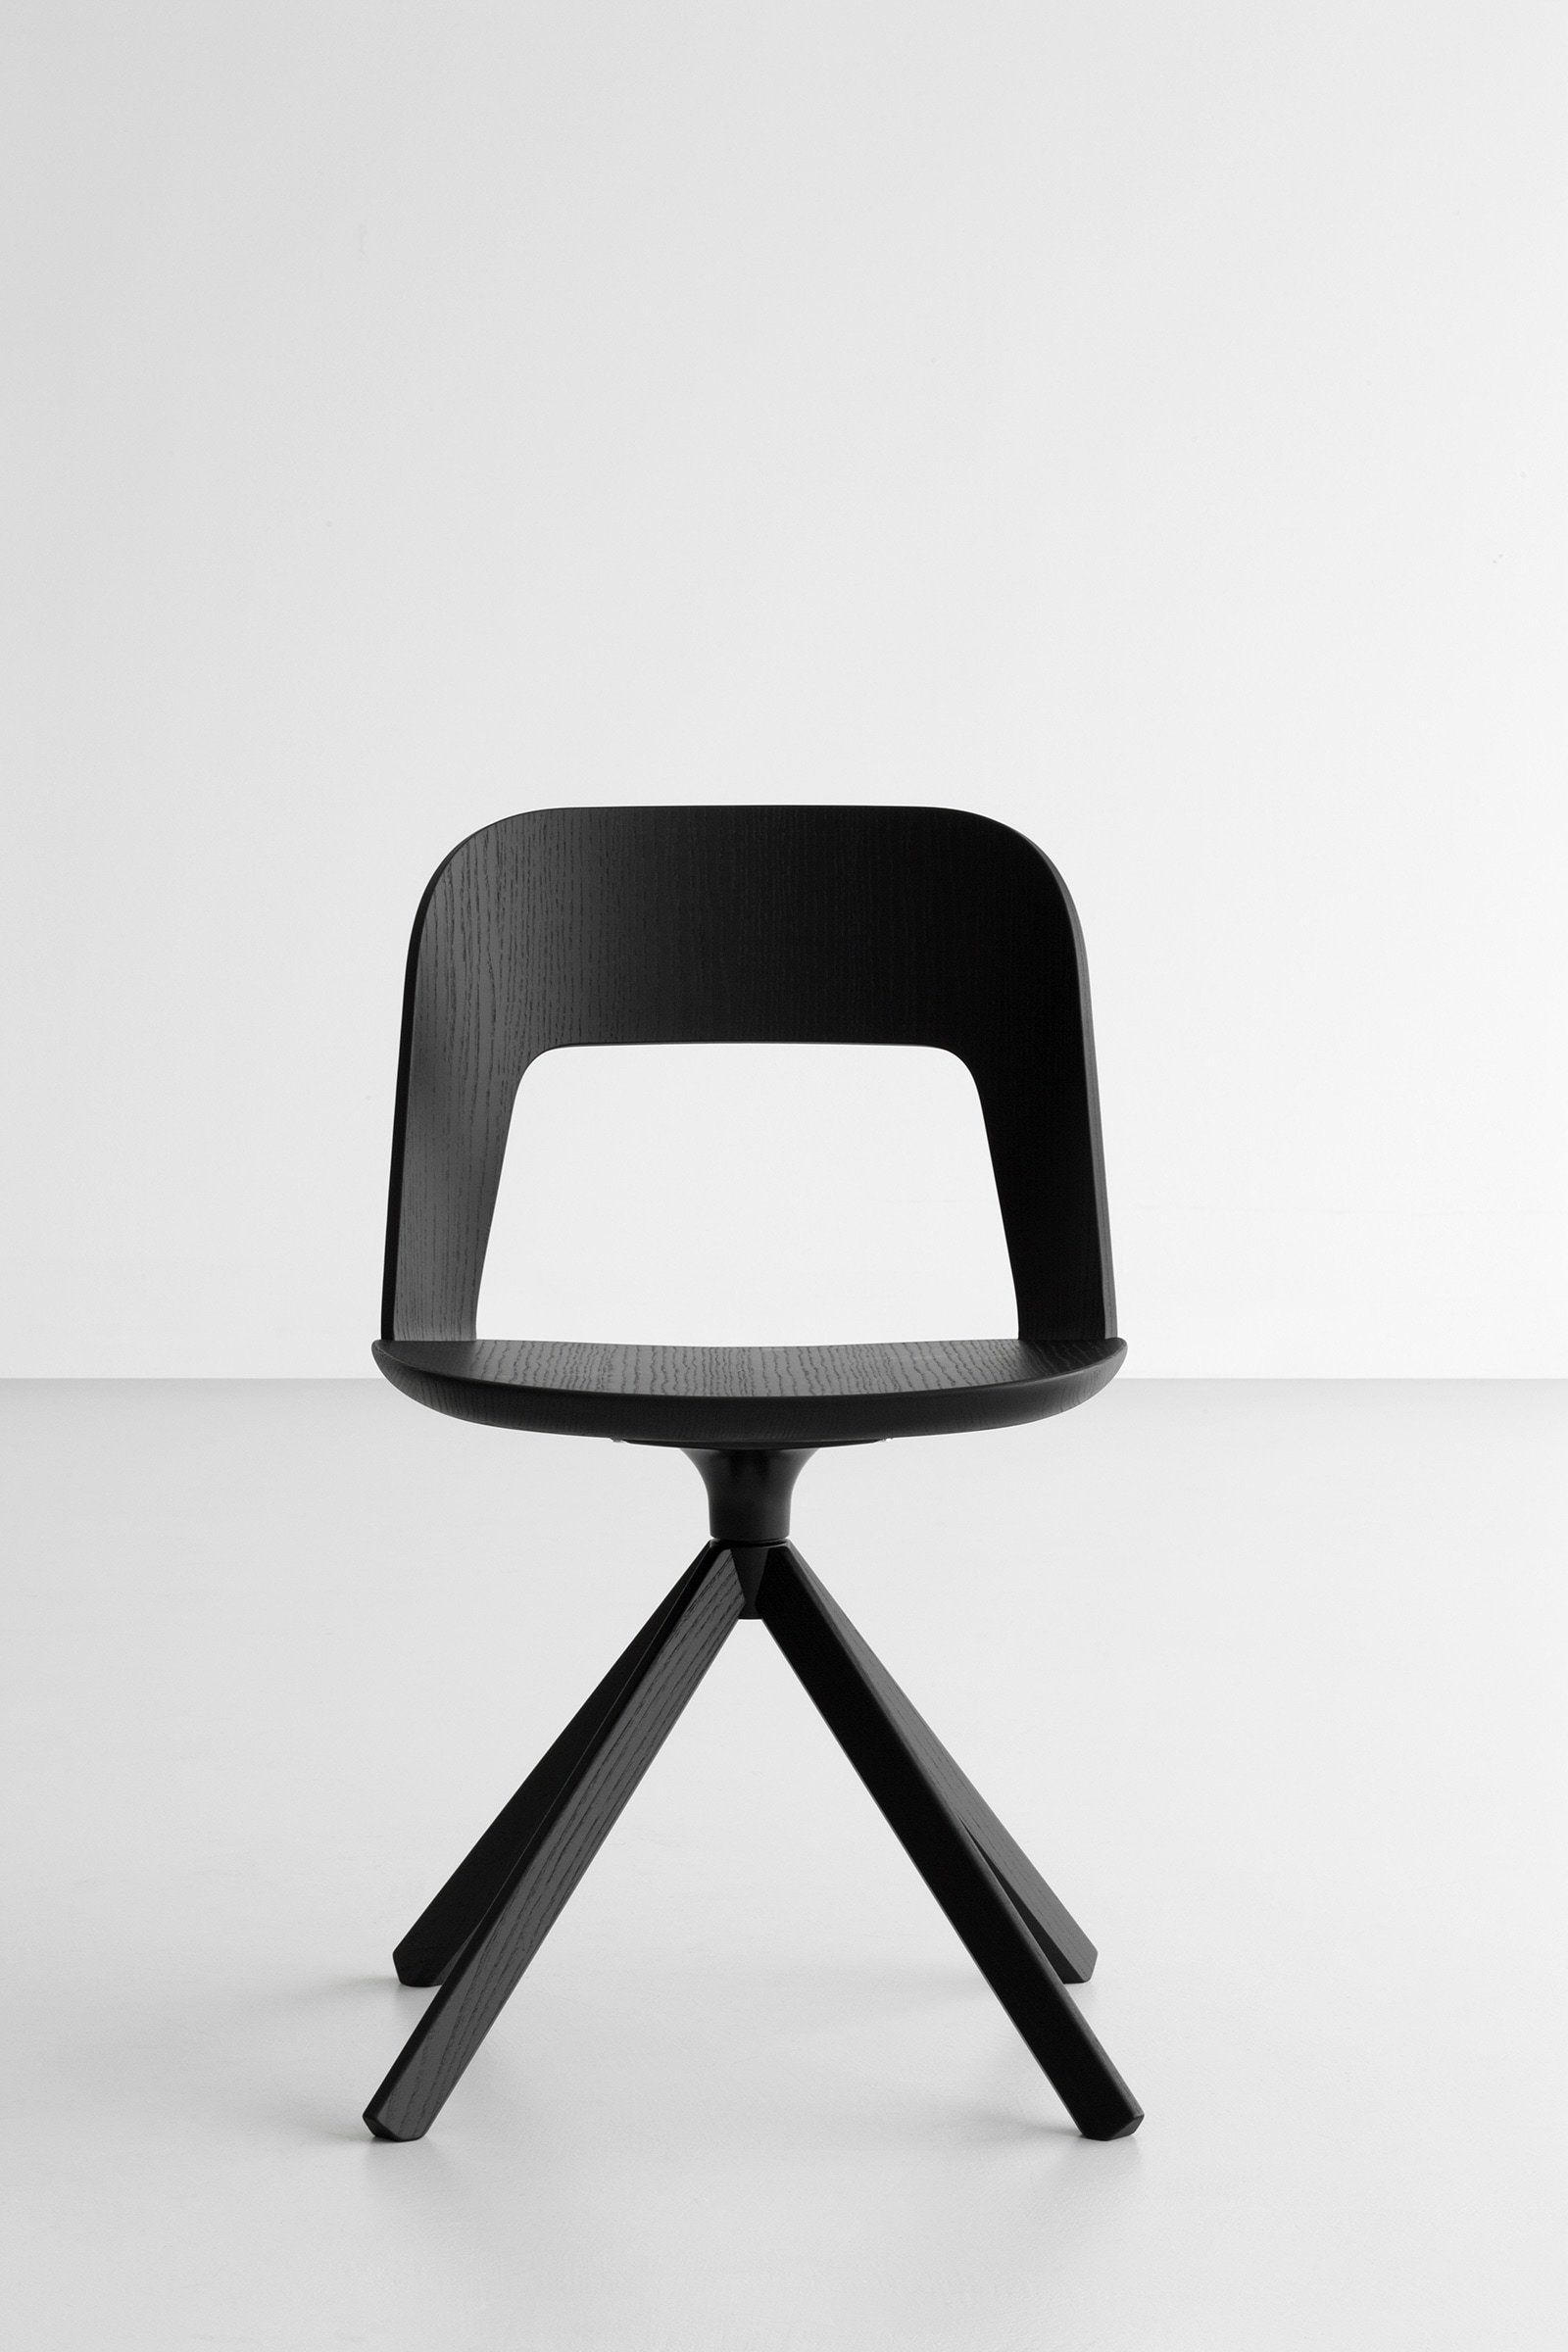 italian furniture company. Launched Last Year By The Italian Furniture Company Lapalma, Arco Is A Chic And Minimal